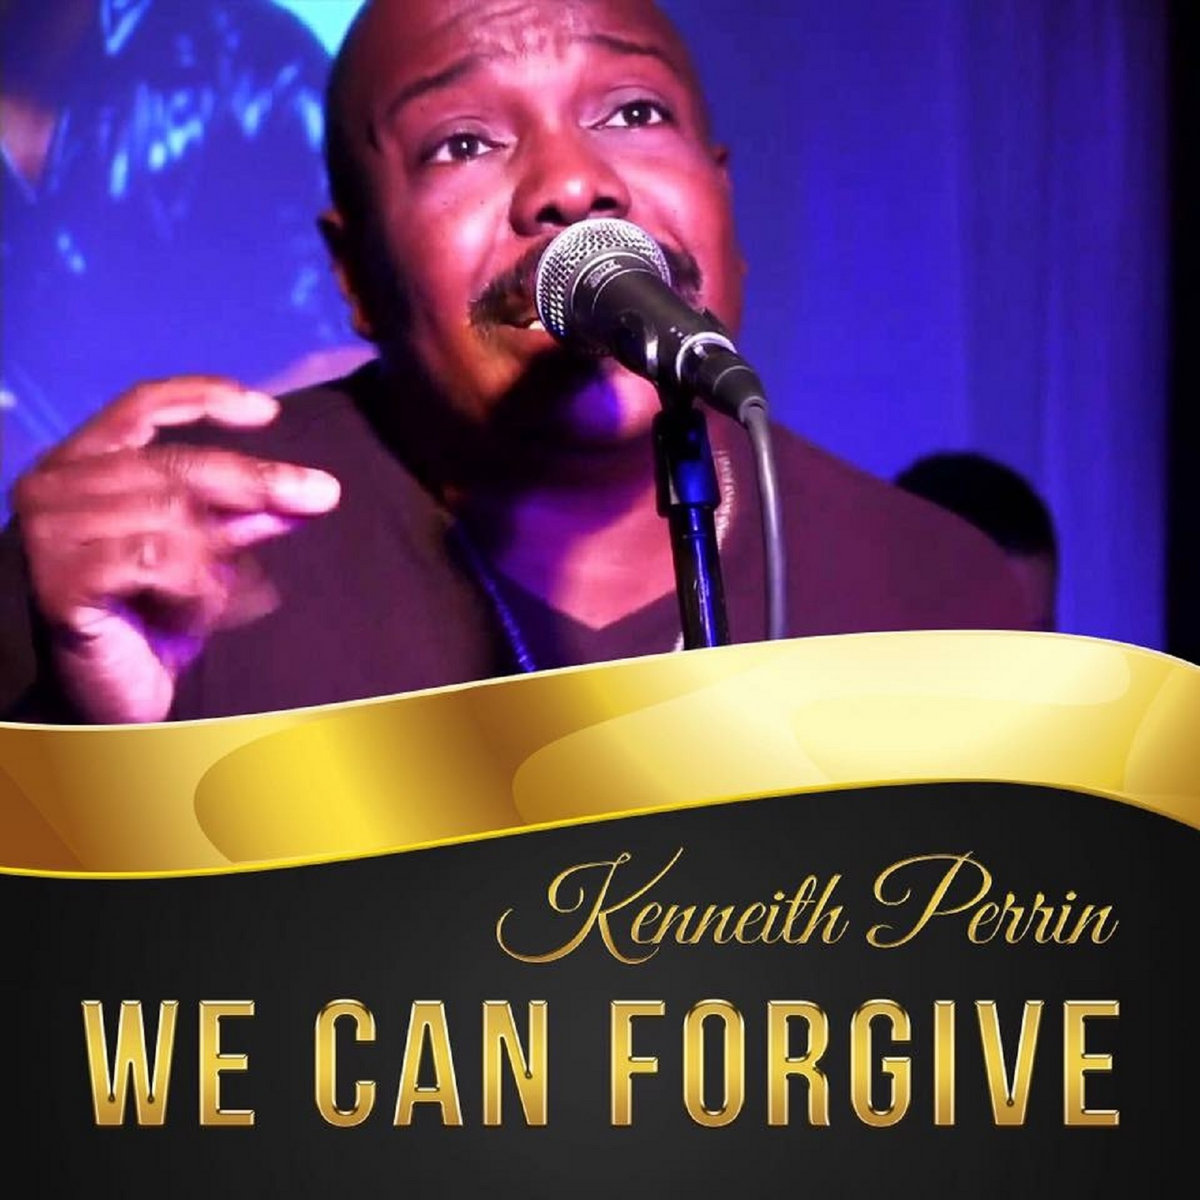 We Can Forgive by Kenneith Perrin